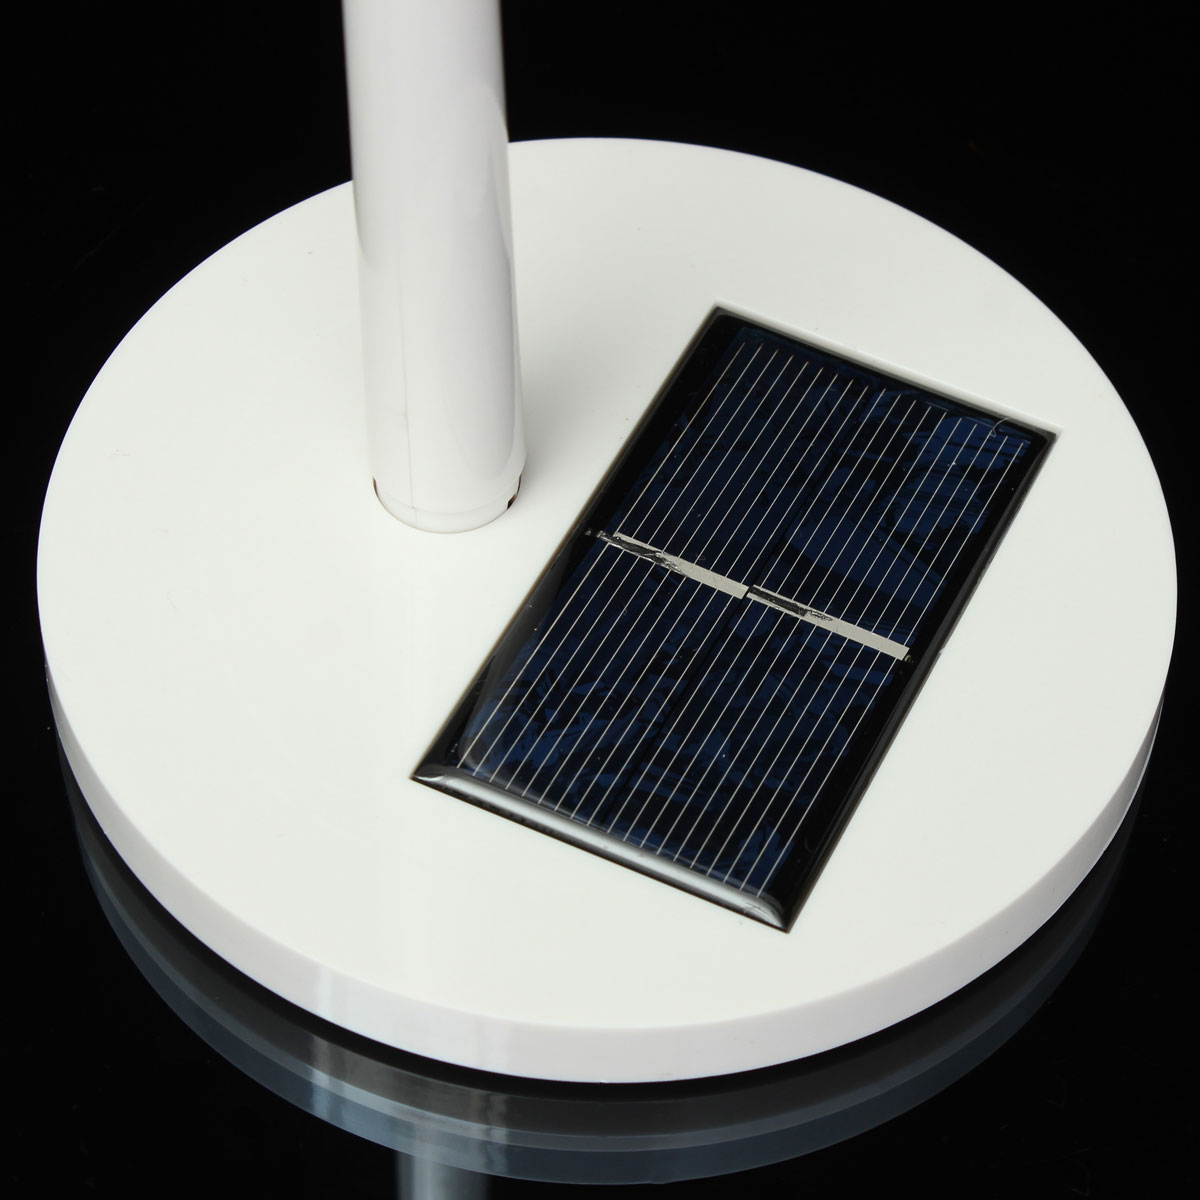 New Science Toy Desktop Model-Solar Powered Windmills/Wind Turbine & ABS plastics